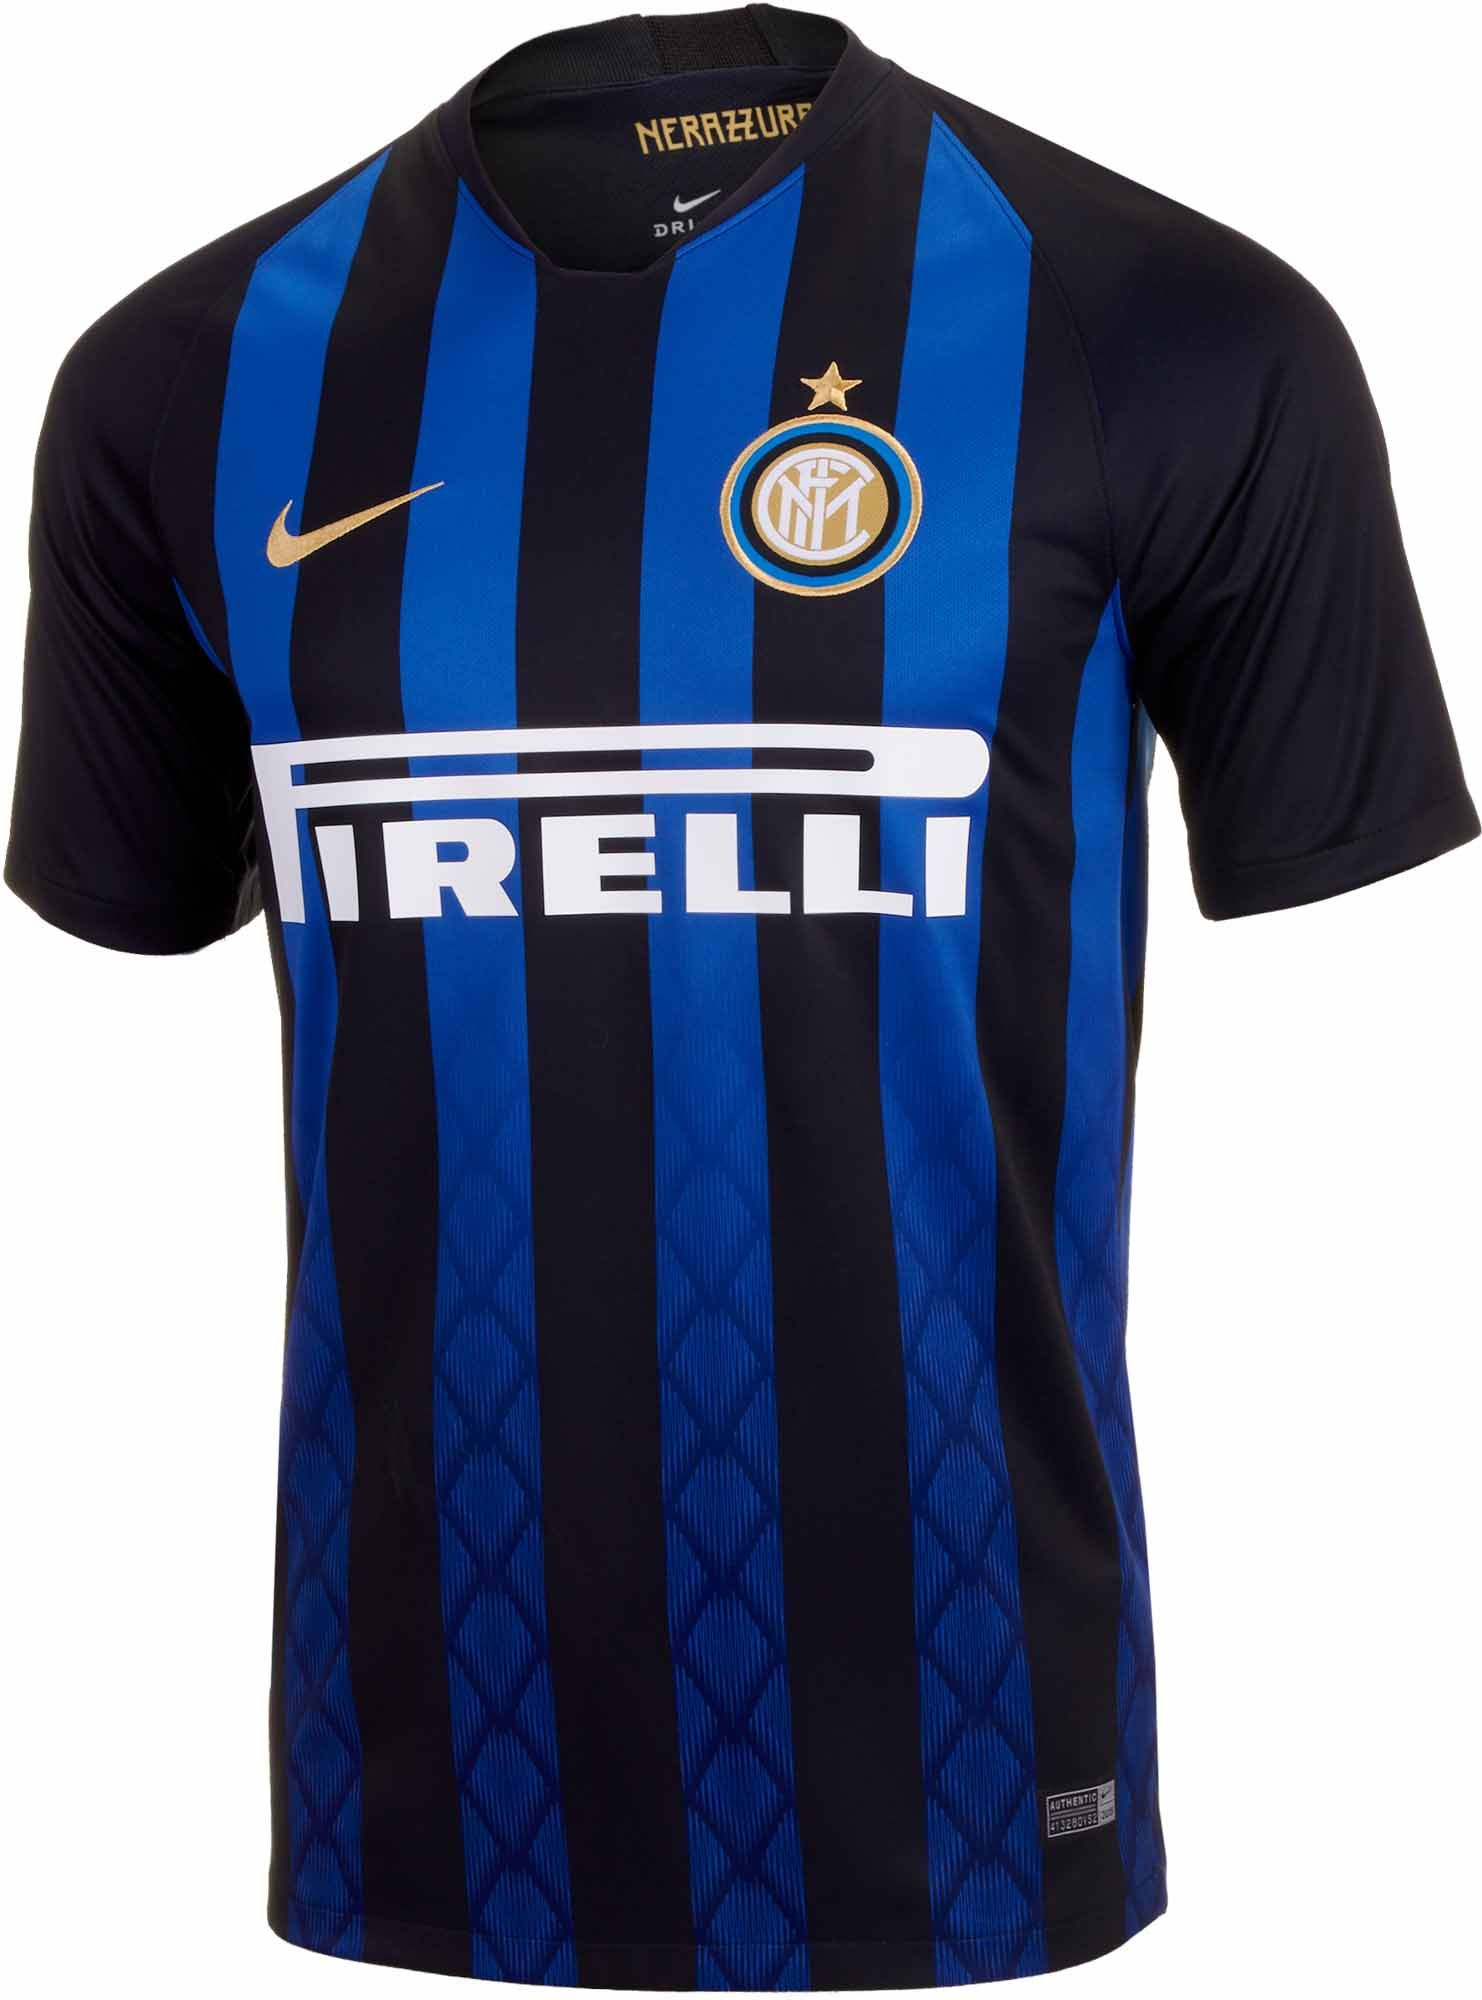 2865d46746 2018 19 Nike Inter Milan Home Jersey. Buy it from SoccerPro ...